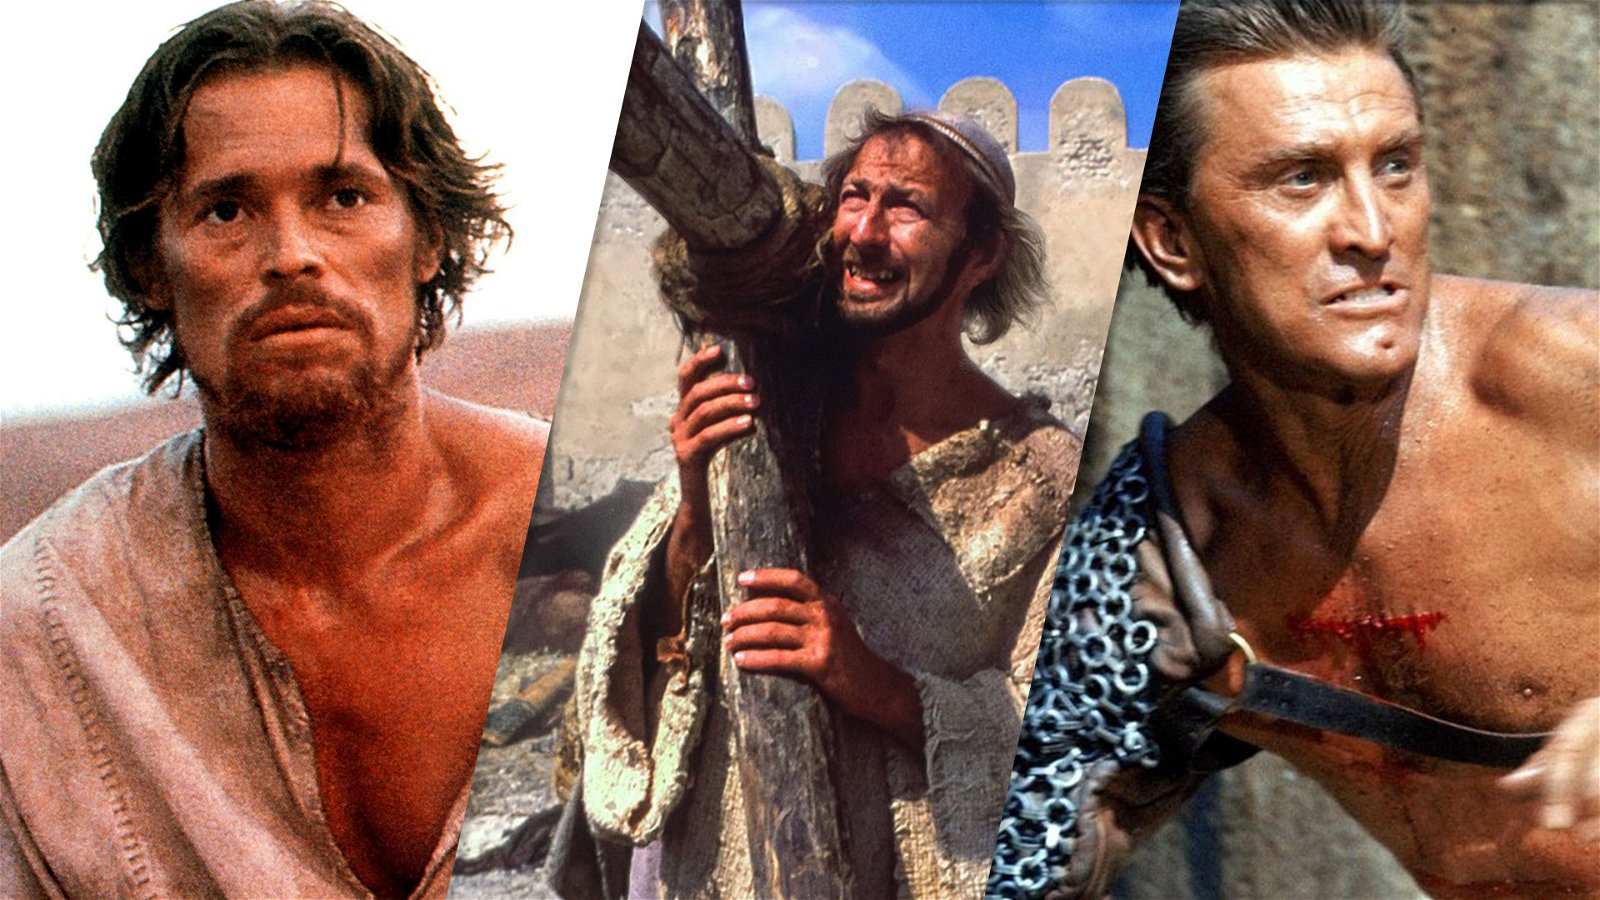 The Top Five Movie Crucifixions 1